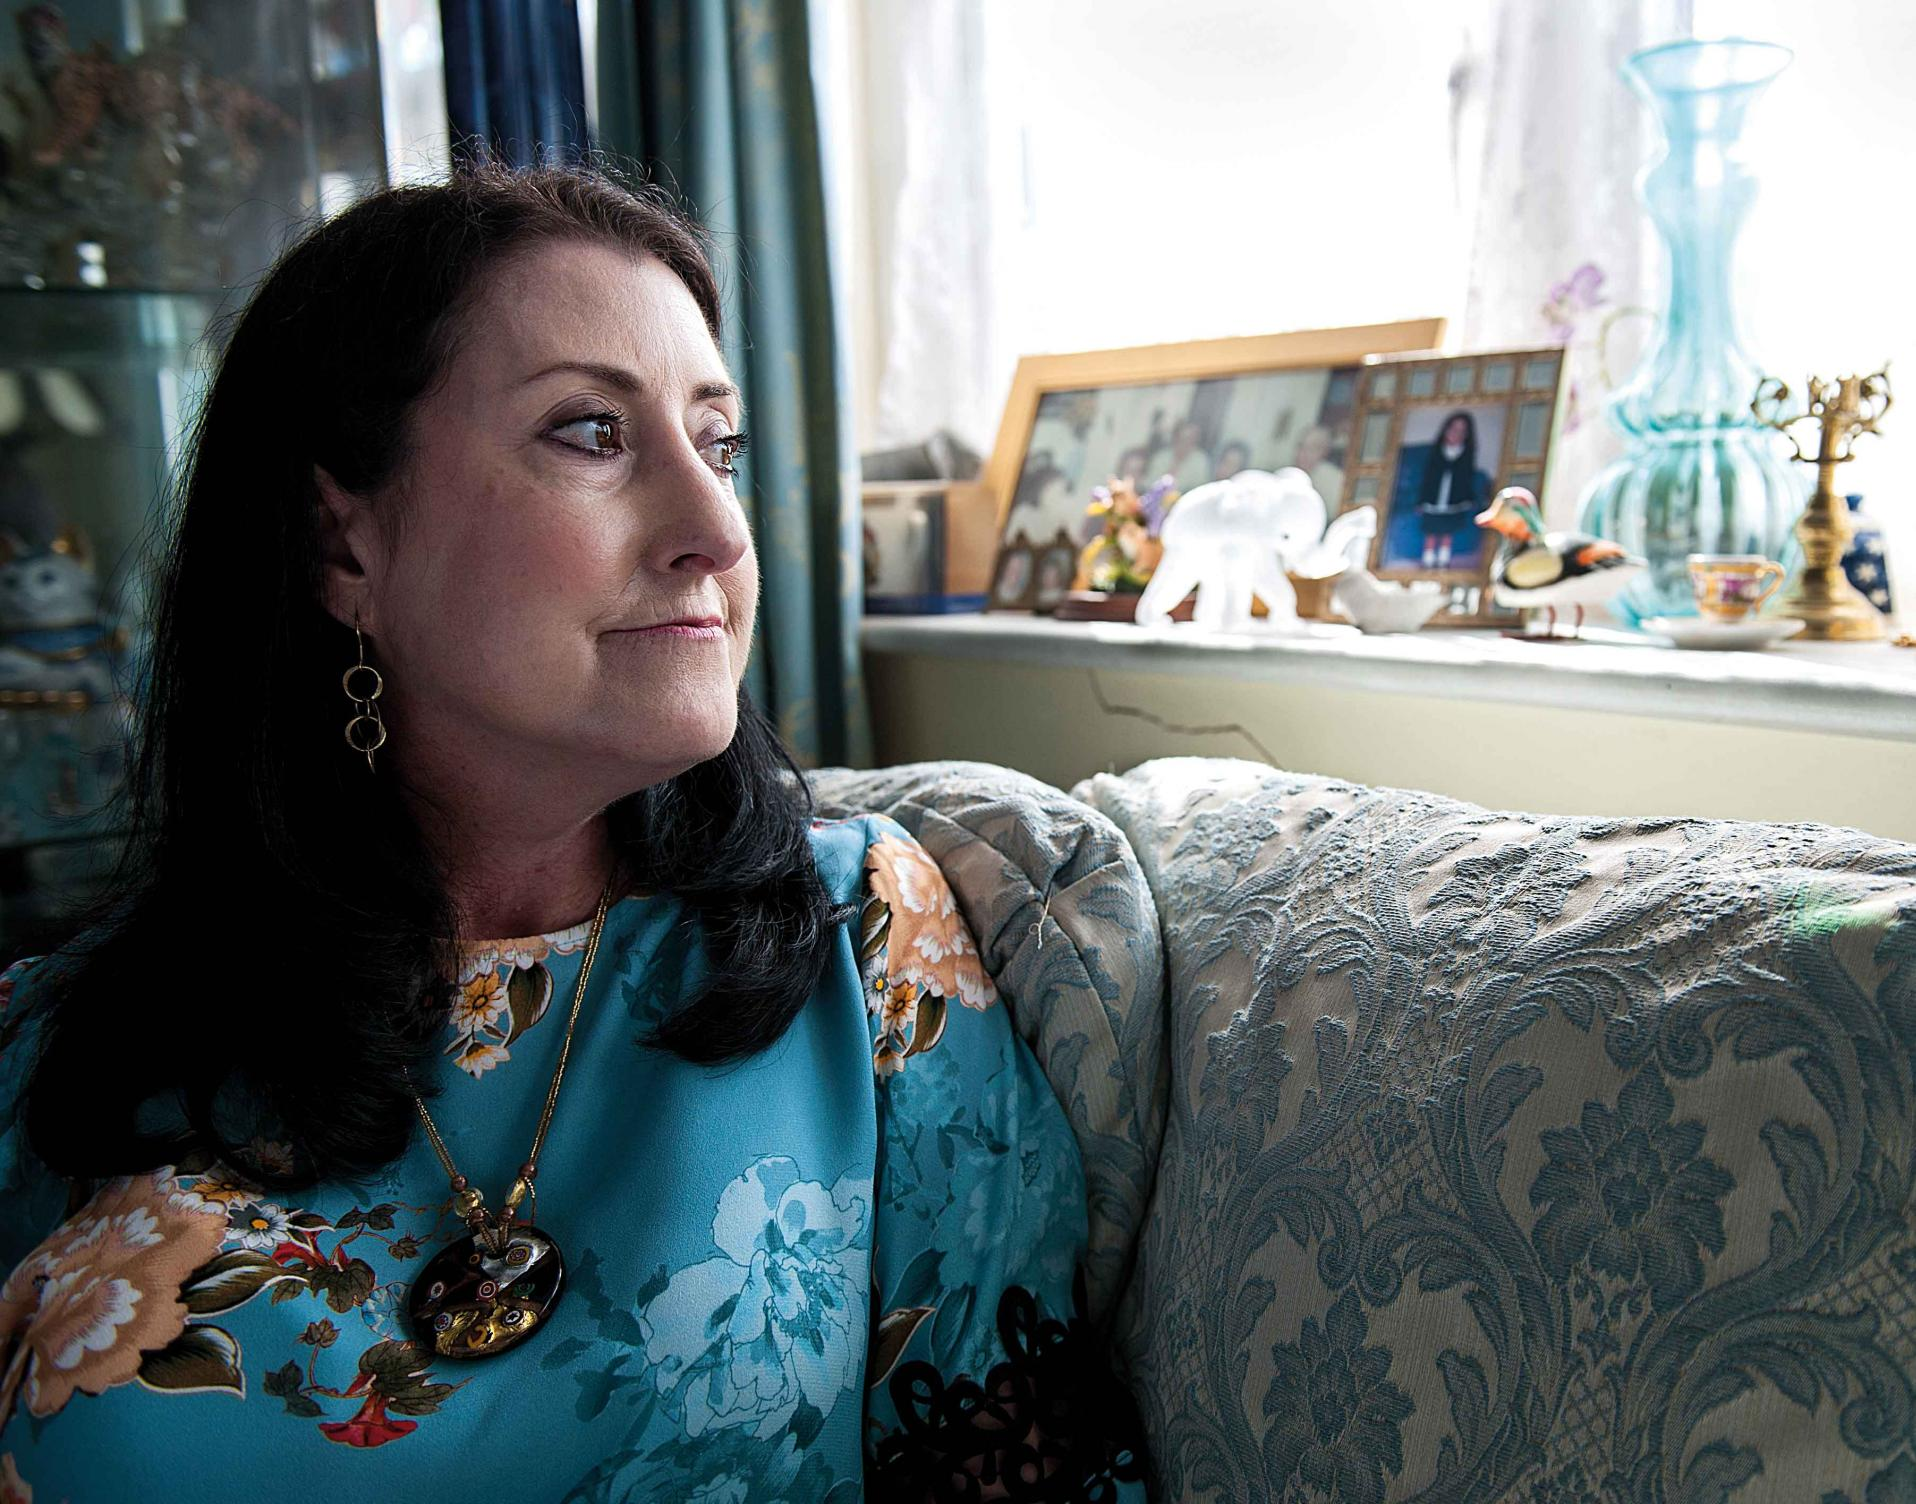 Woman with scleroderma looking out of window